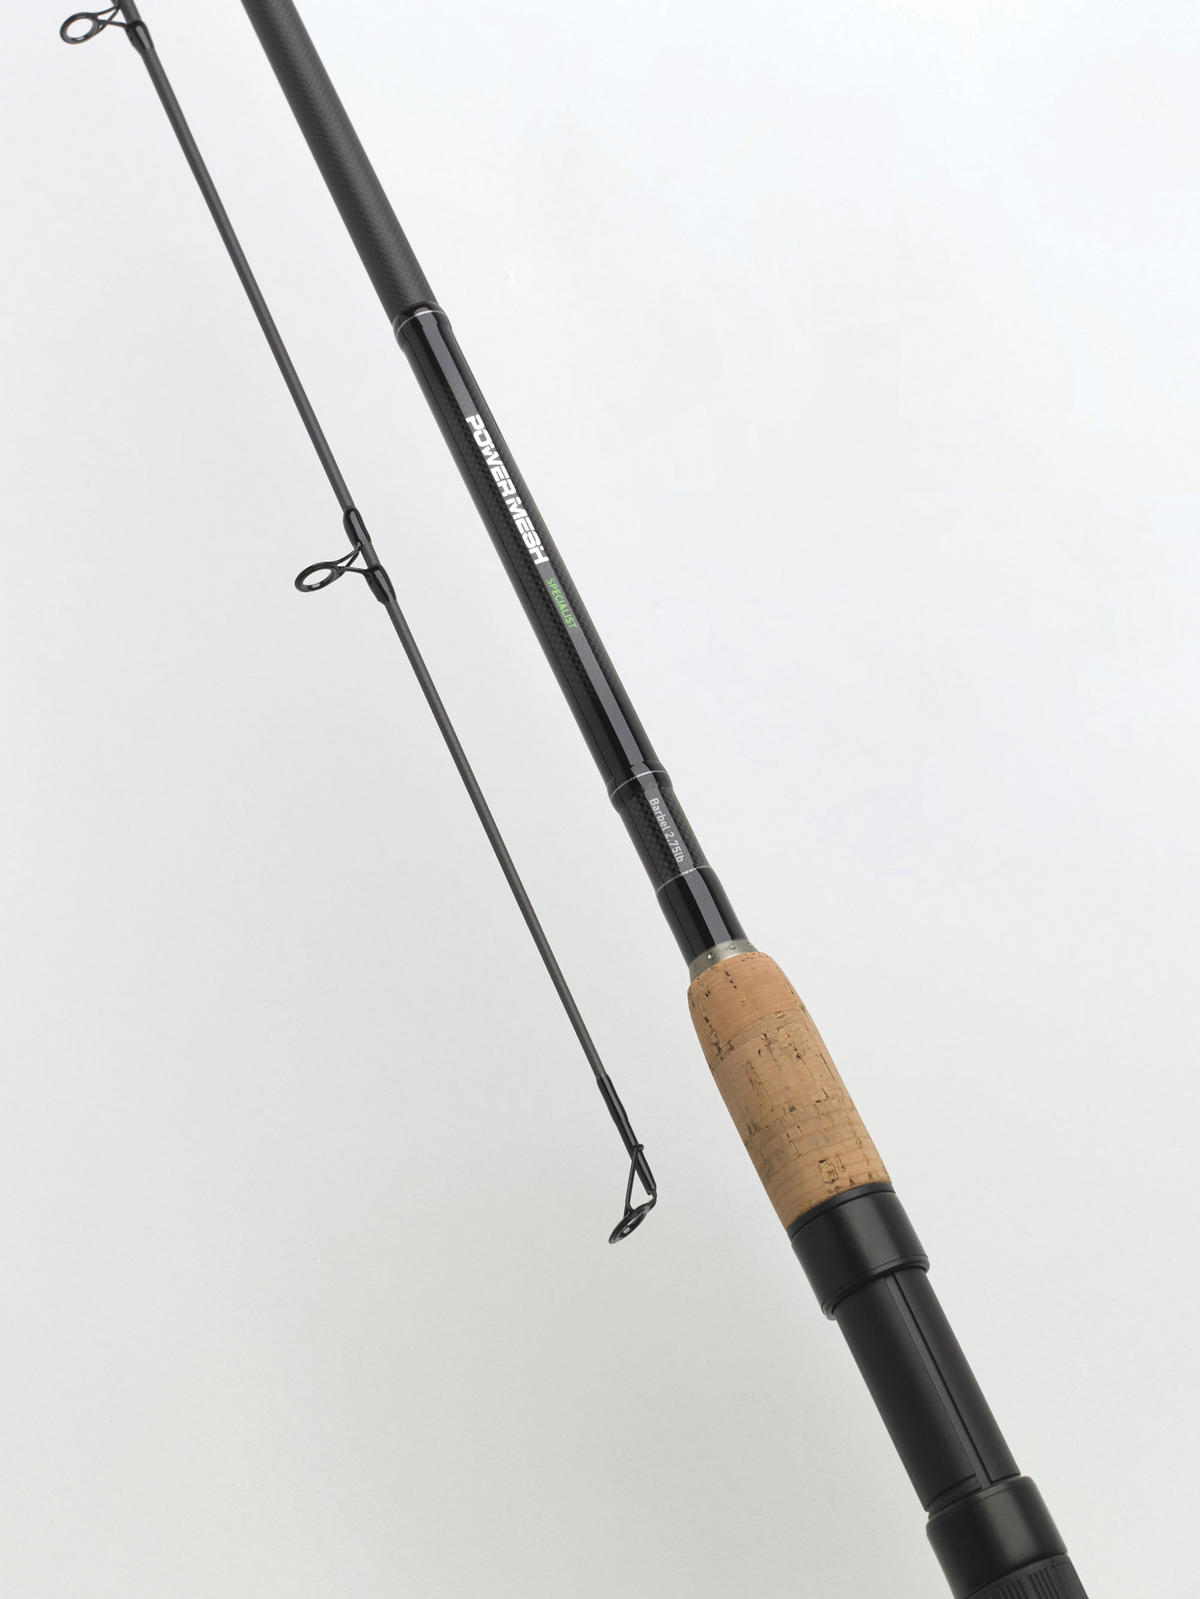 New Daiwa Powermesh Specialist Rods Barbel 12' 2.75lb 2pc Model No. PMS2234B-AU